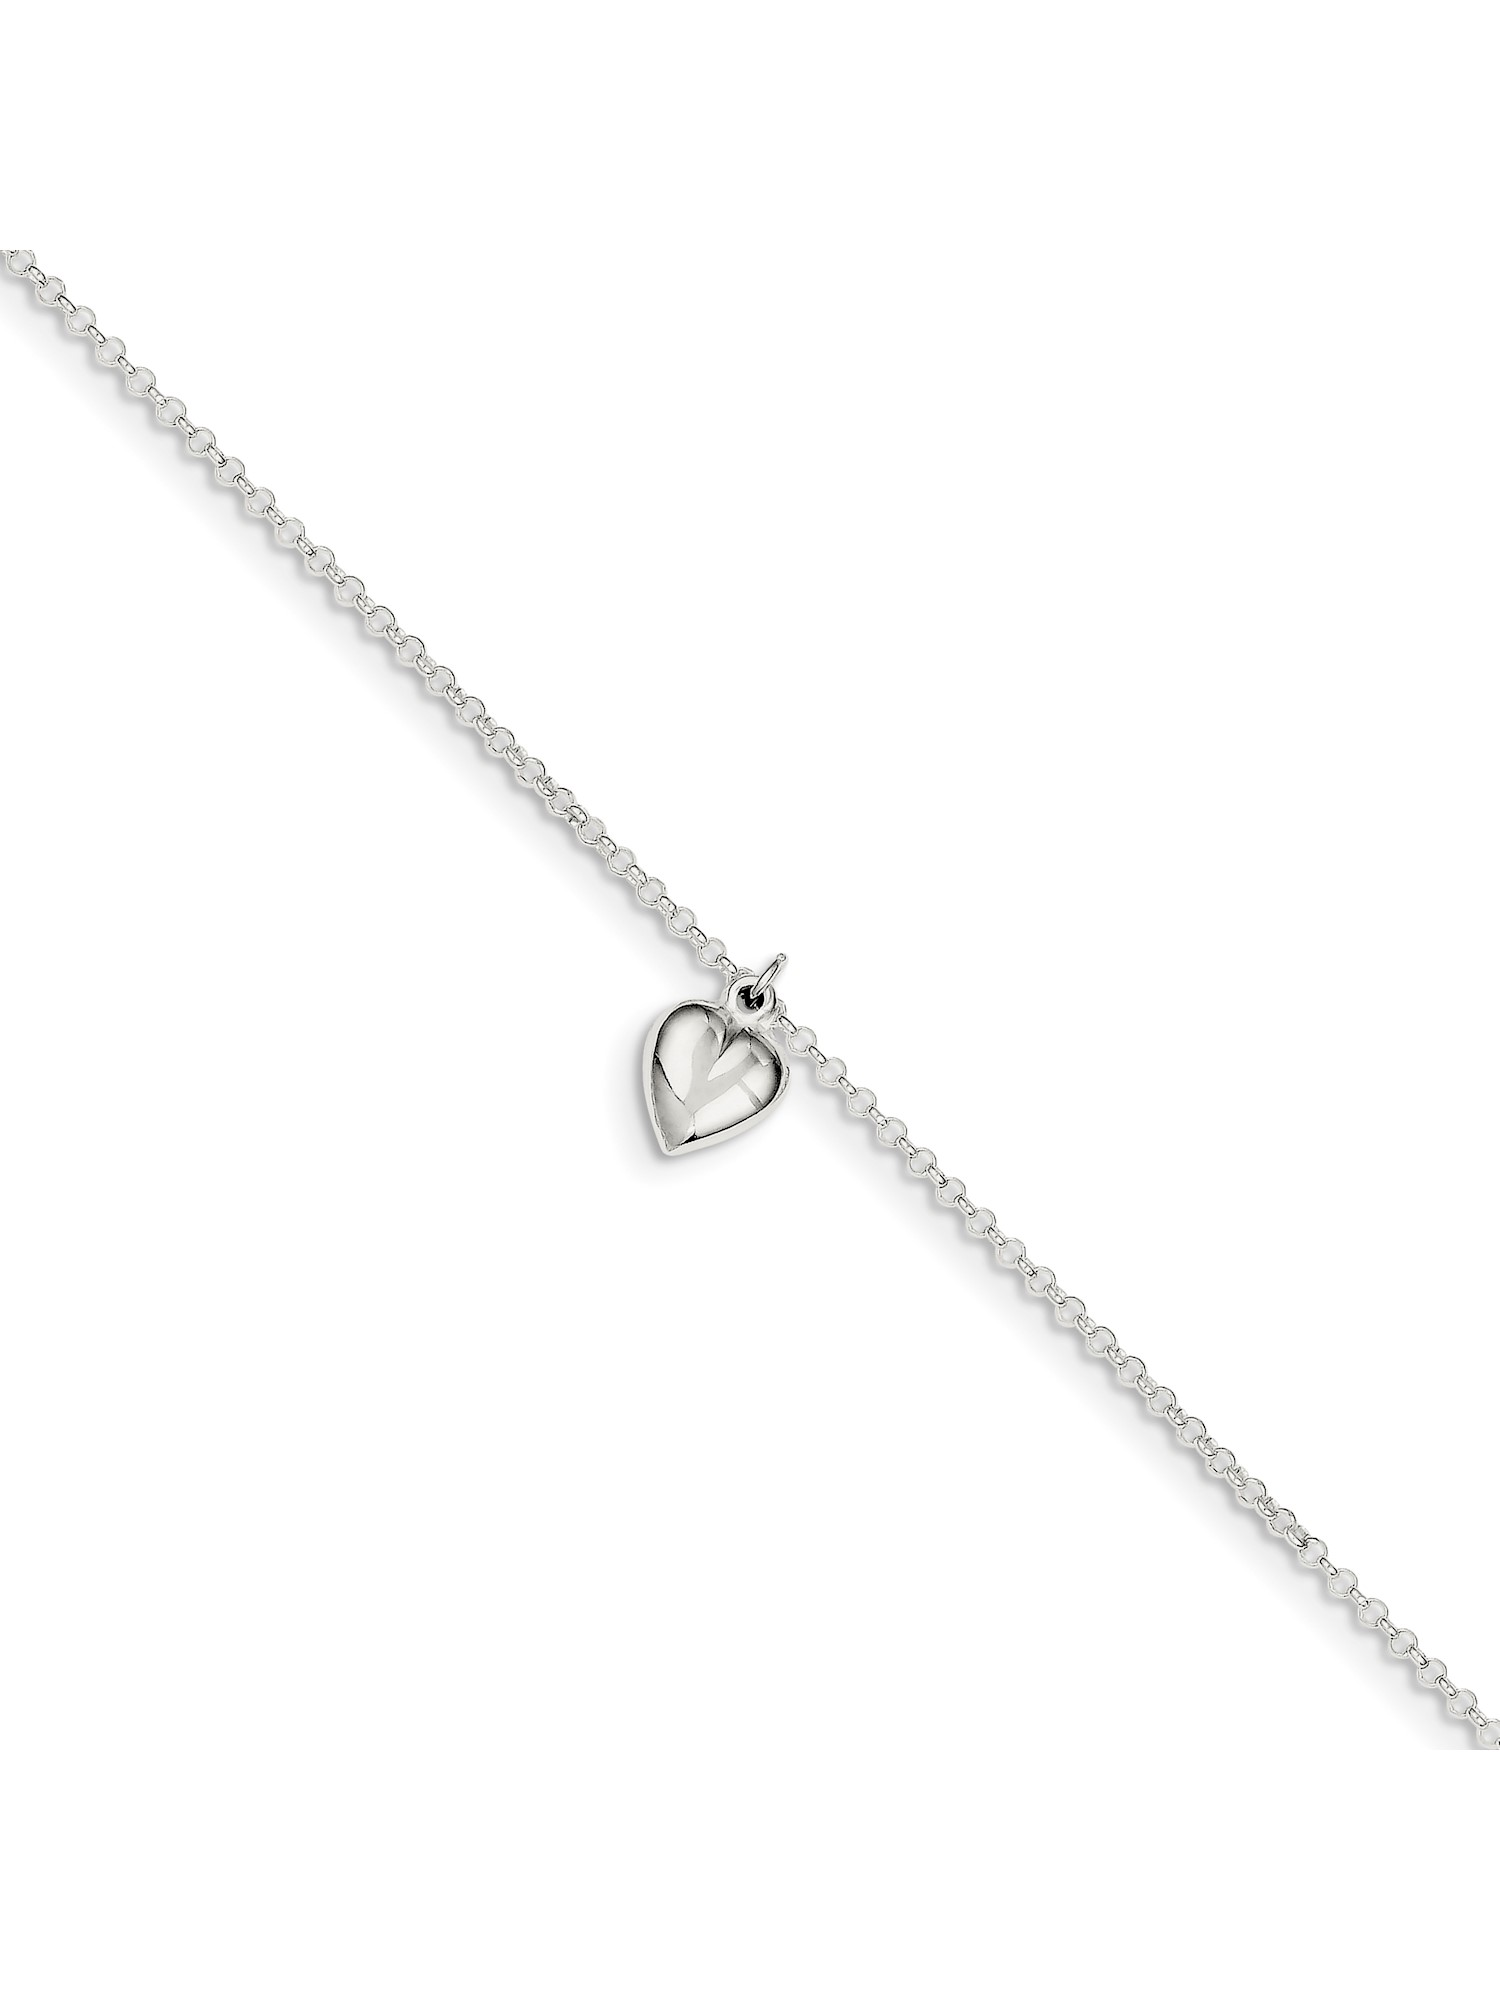 Bonyak Jewelry Sterling Silver Polished CZ Bow 9in w//1Ext Anklet